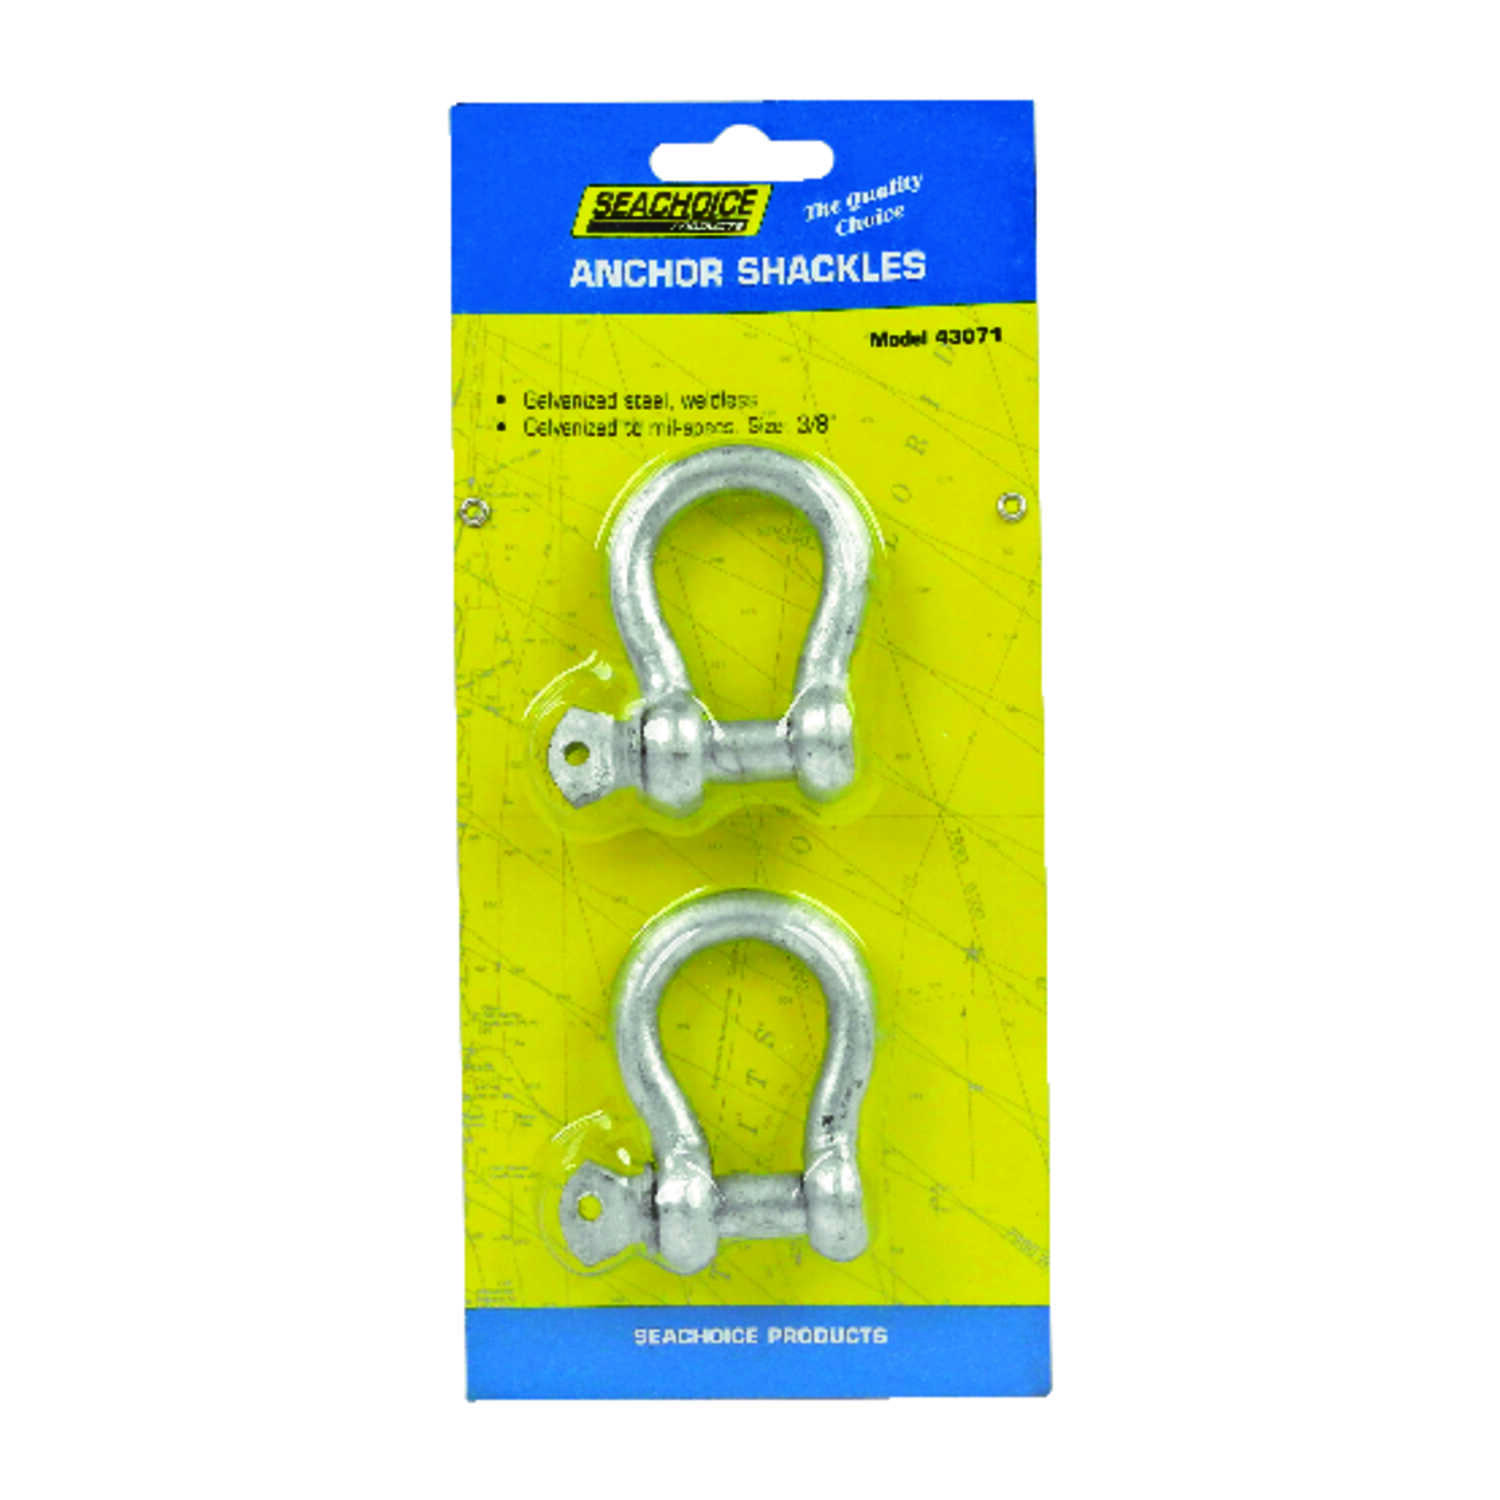 Seachoice  Galvanized  11.5 in. L x 3/8 in. W Shackle  2 pc. Steel